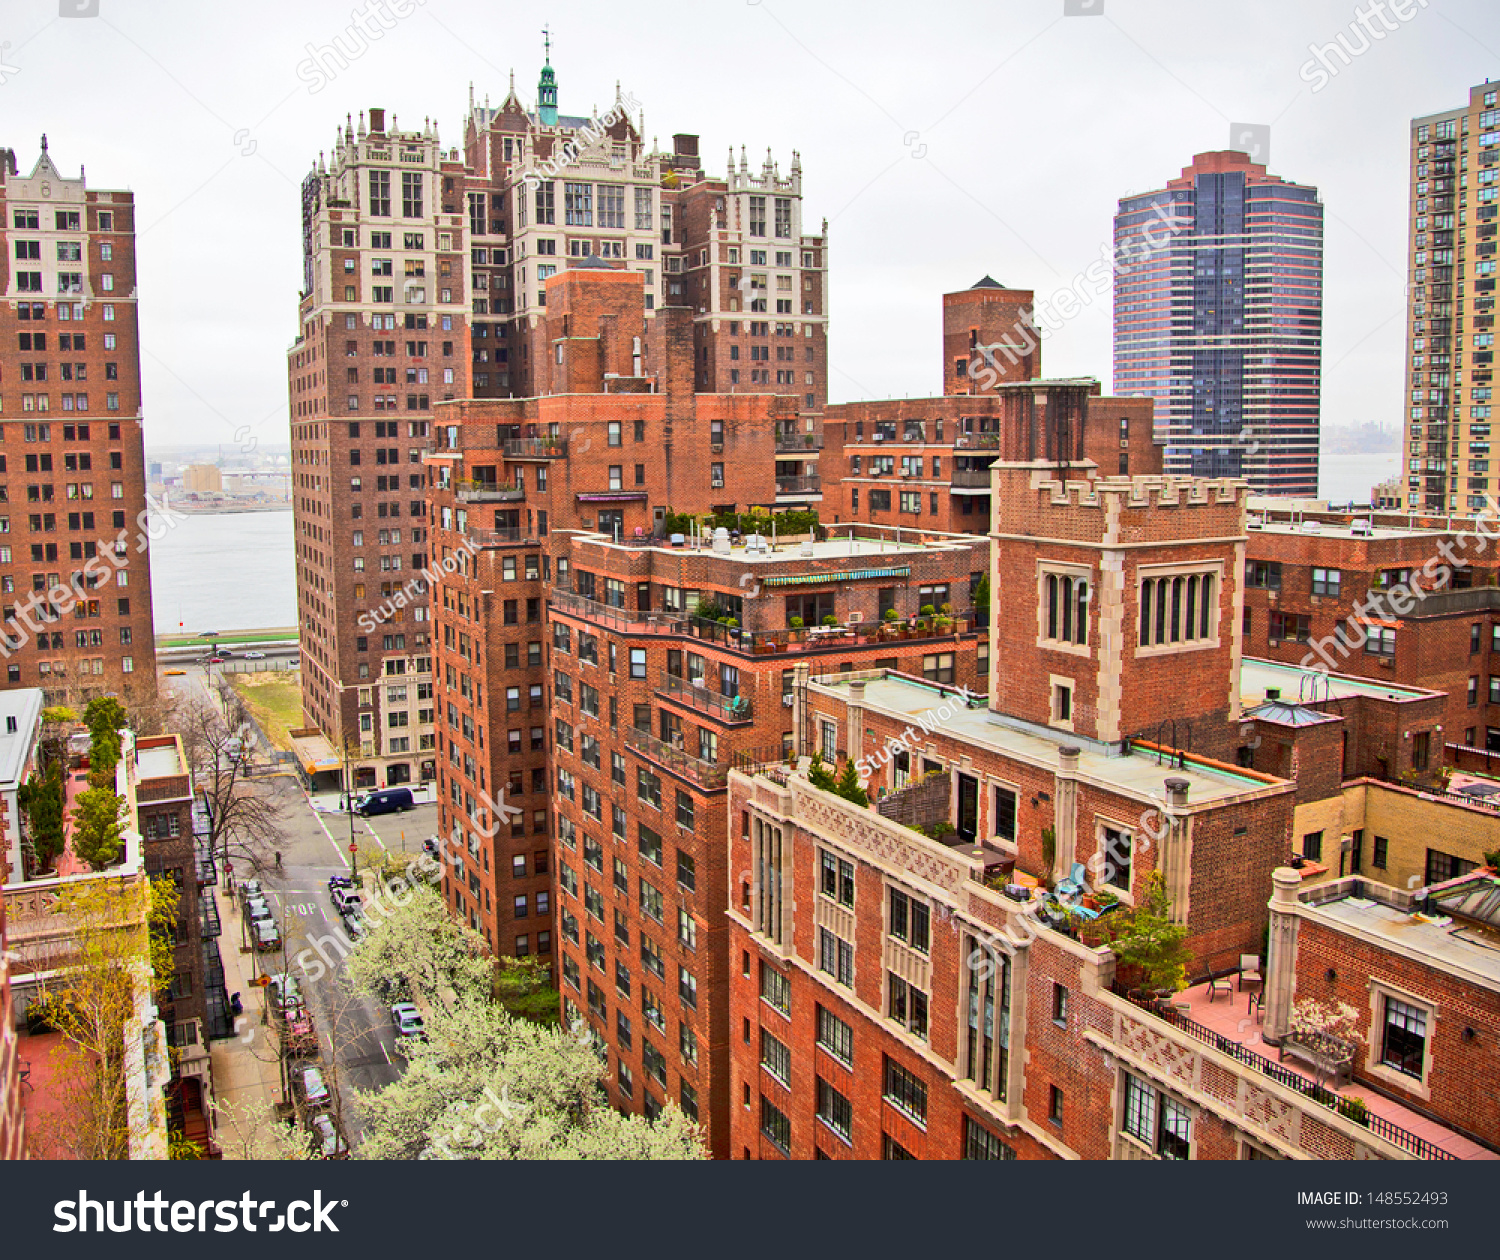 Apartment Rentals In New York City Manhattan: Traditional Red Brick Apartments In Manhattan New York